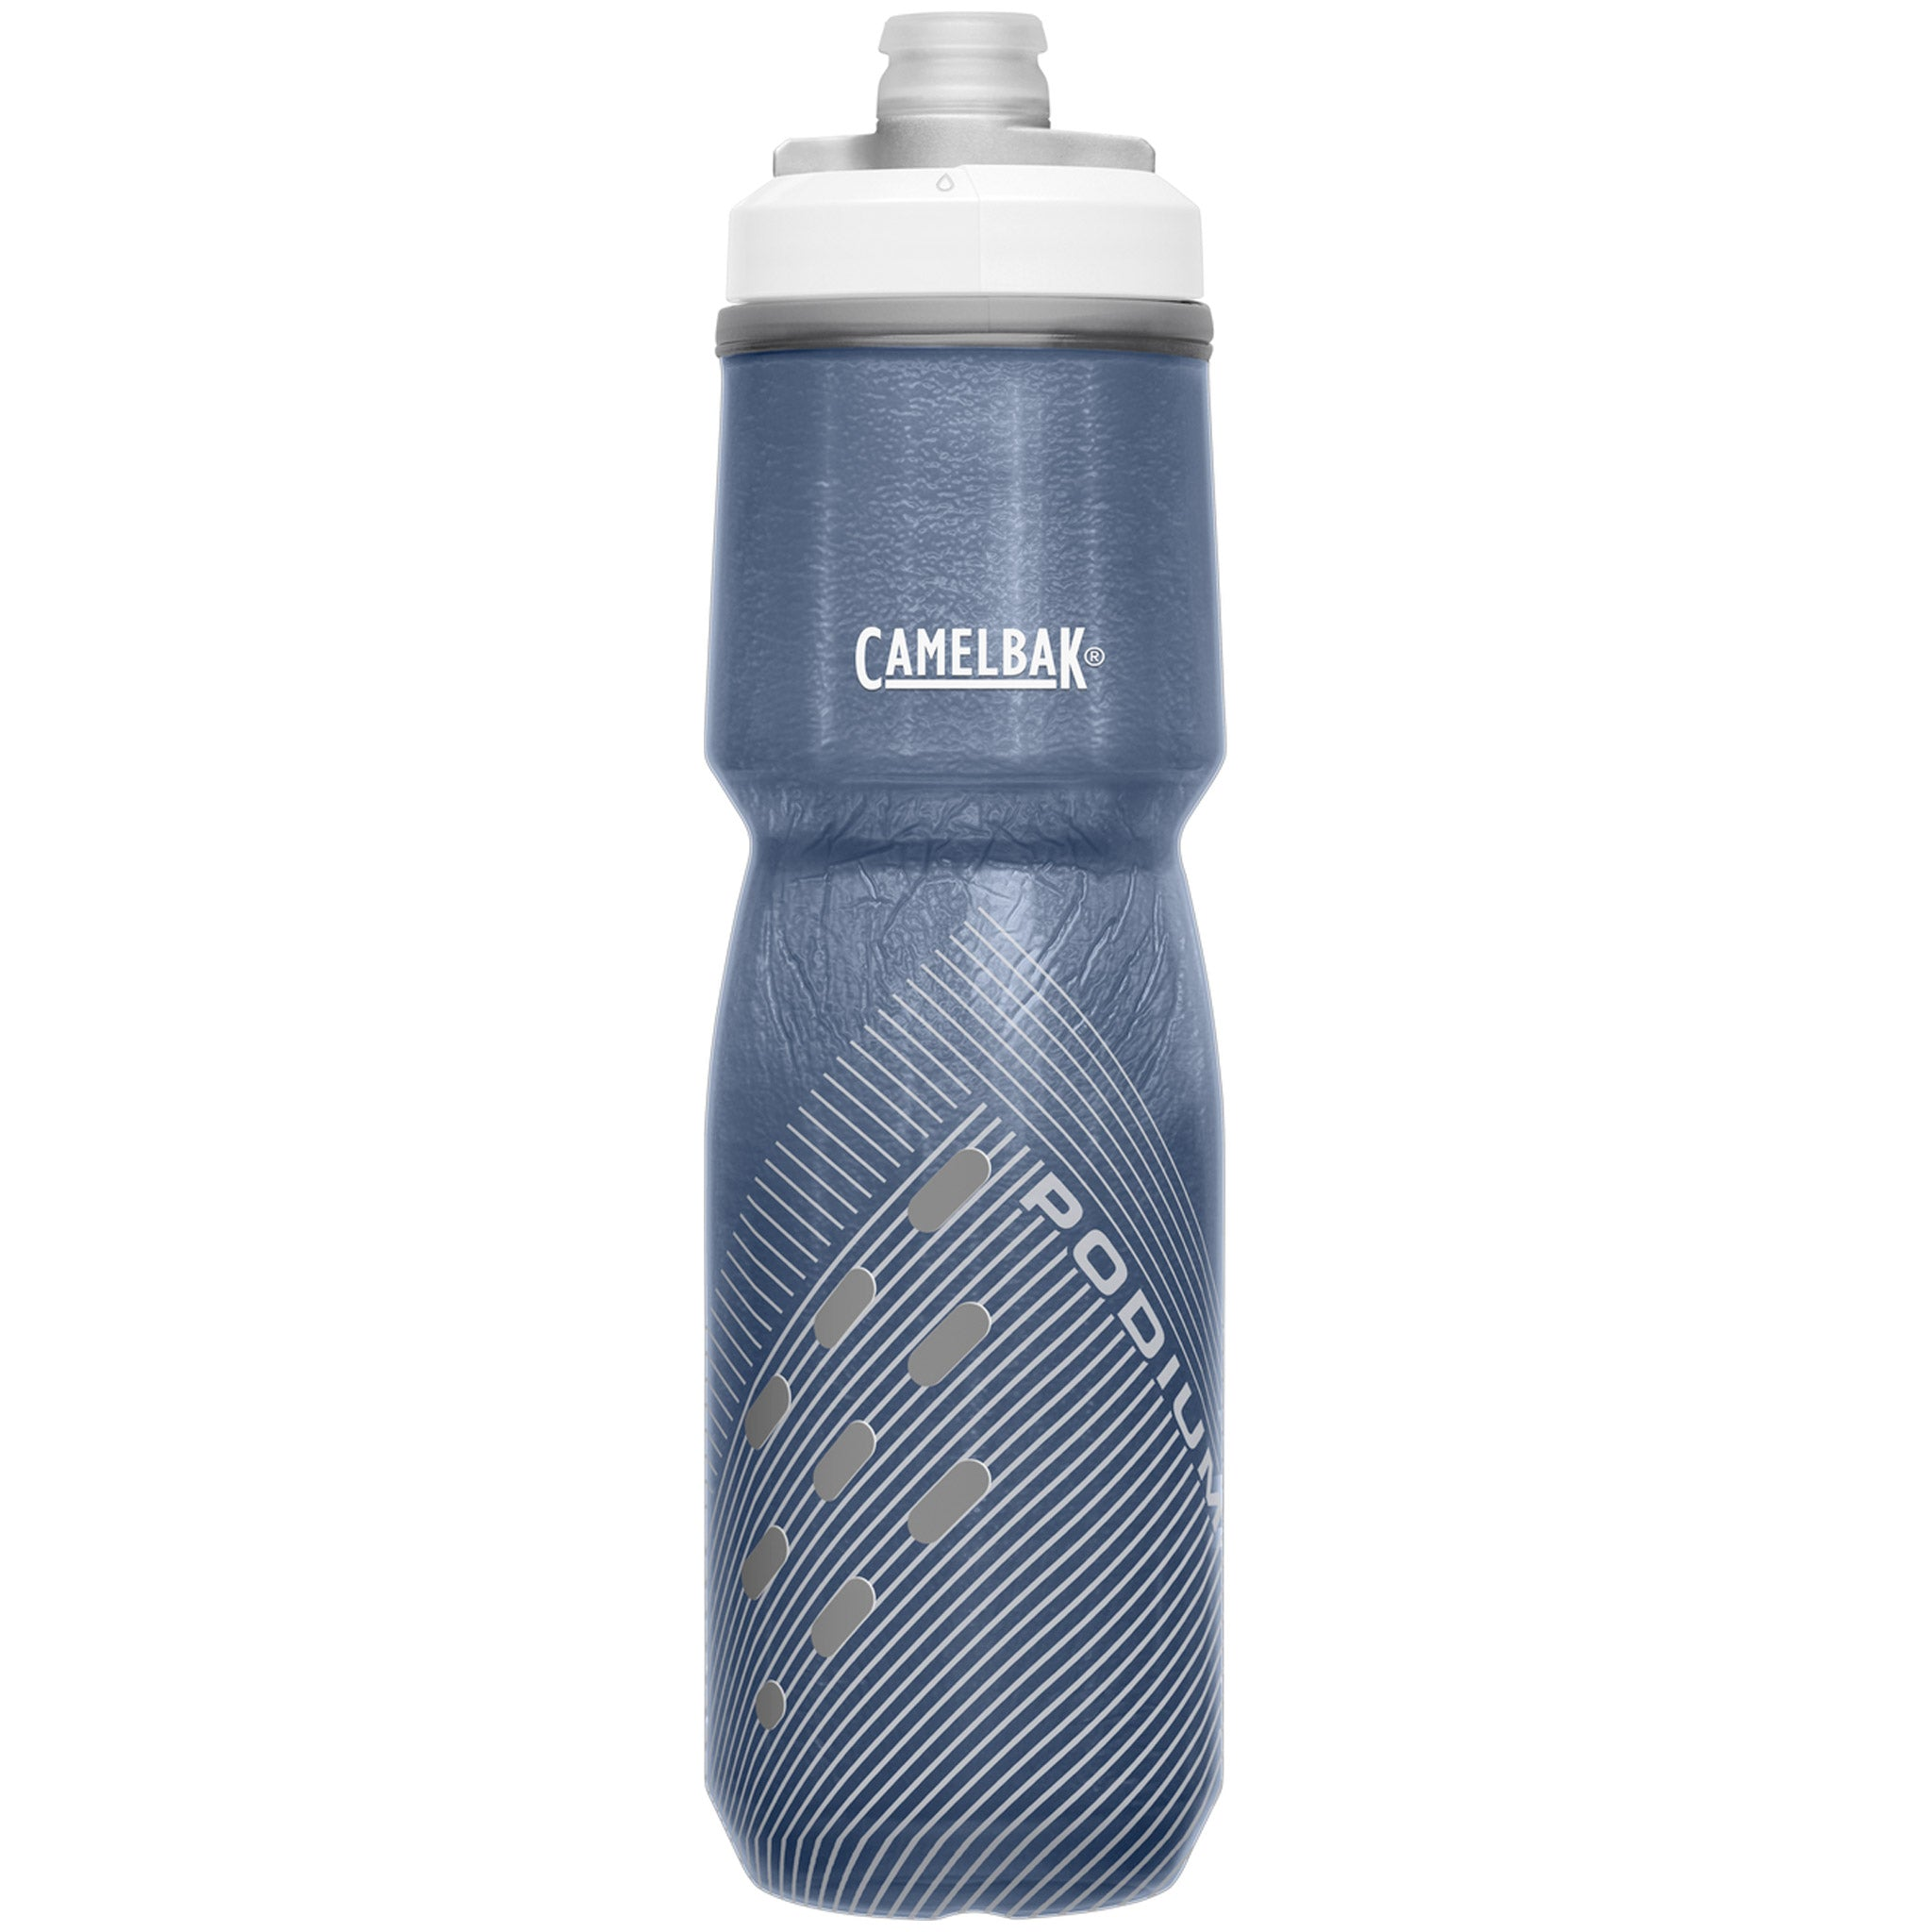 Camelbak Podium Big Chill 700ml, Navy Perforated, buy online at Woolys Wheels